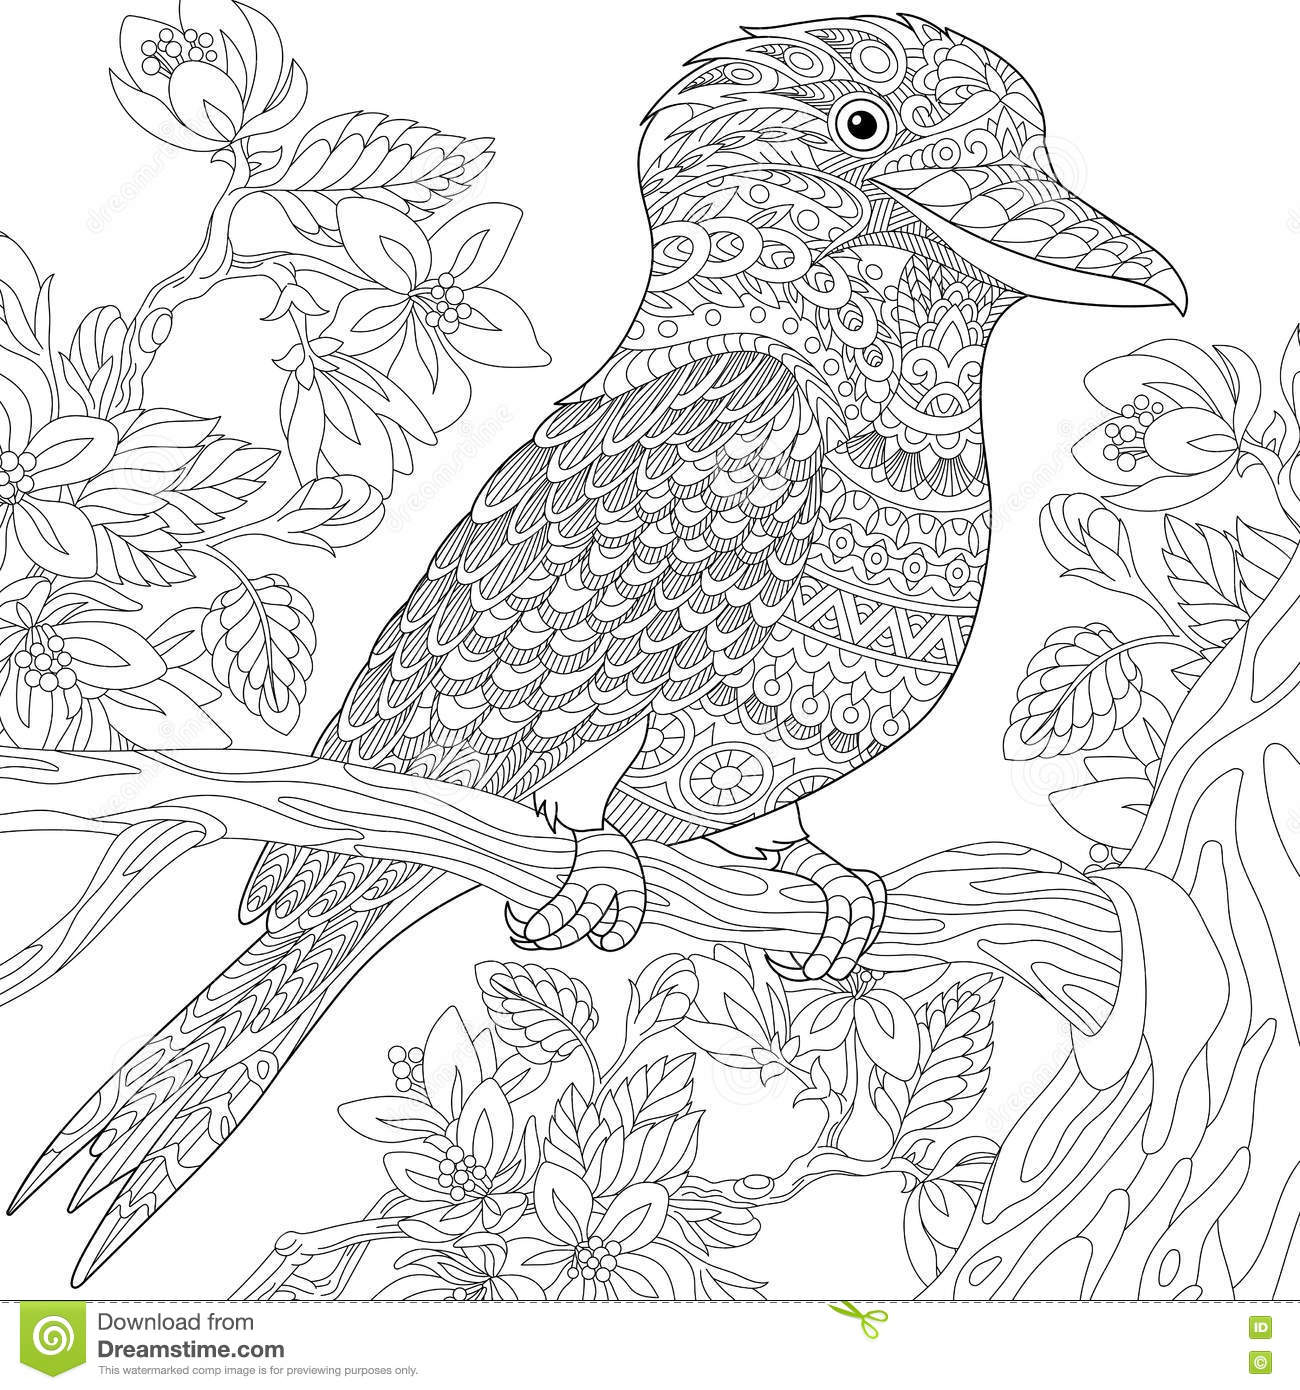 Zentangle Stylized Kookaburra Bird